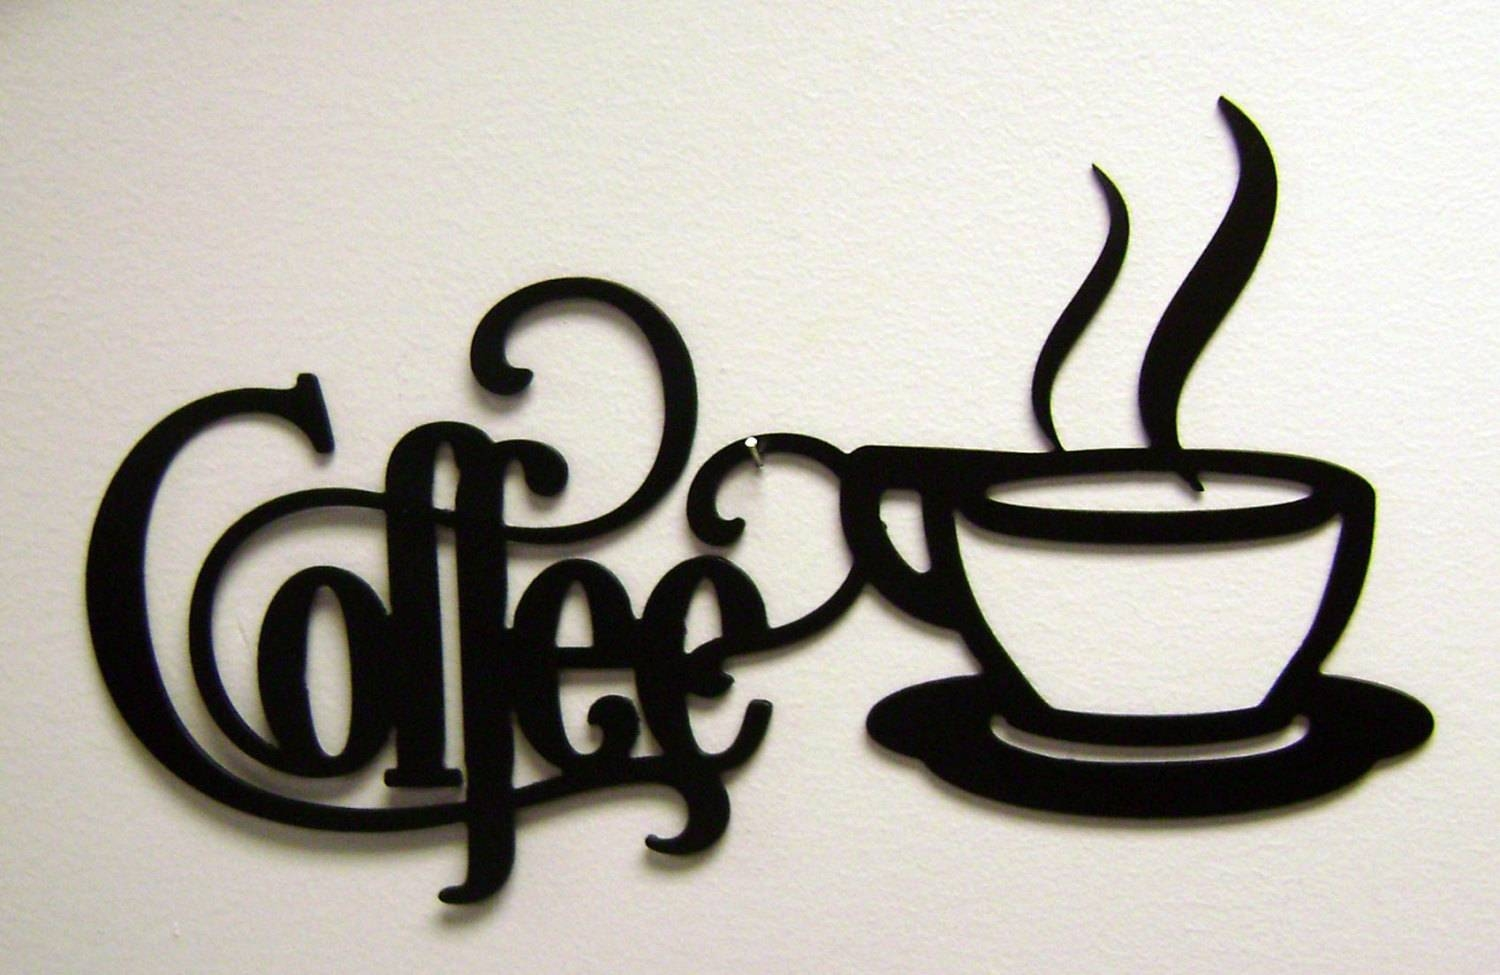 14 X 7 Bistro Coffee Sign With Mug Metal Wall Intended For Recent Coffee Cup Metal Wall Art (View 1 of 20)